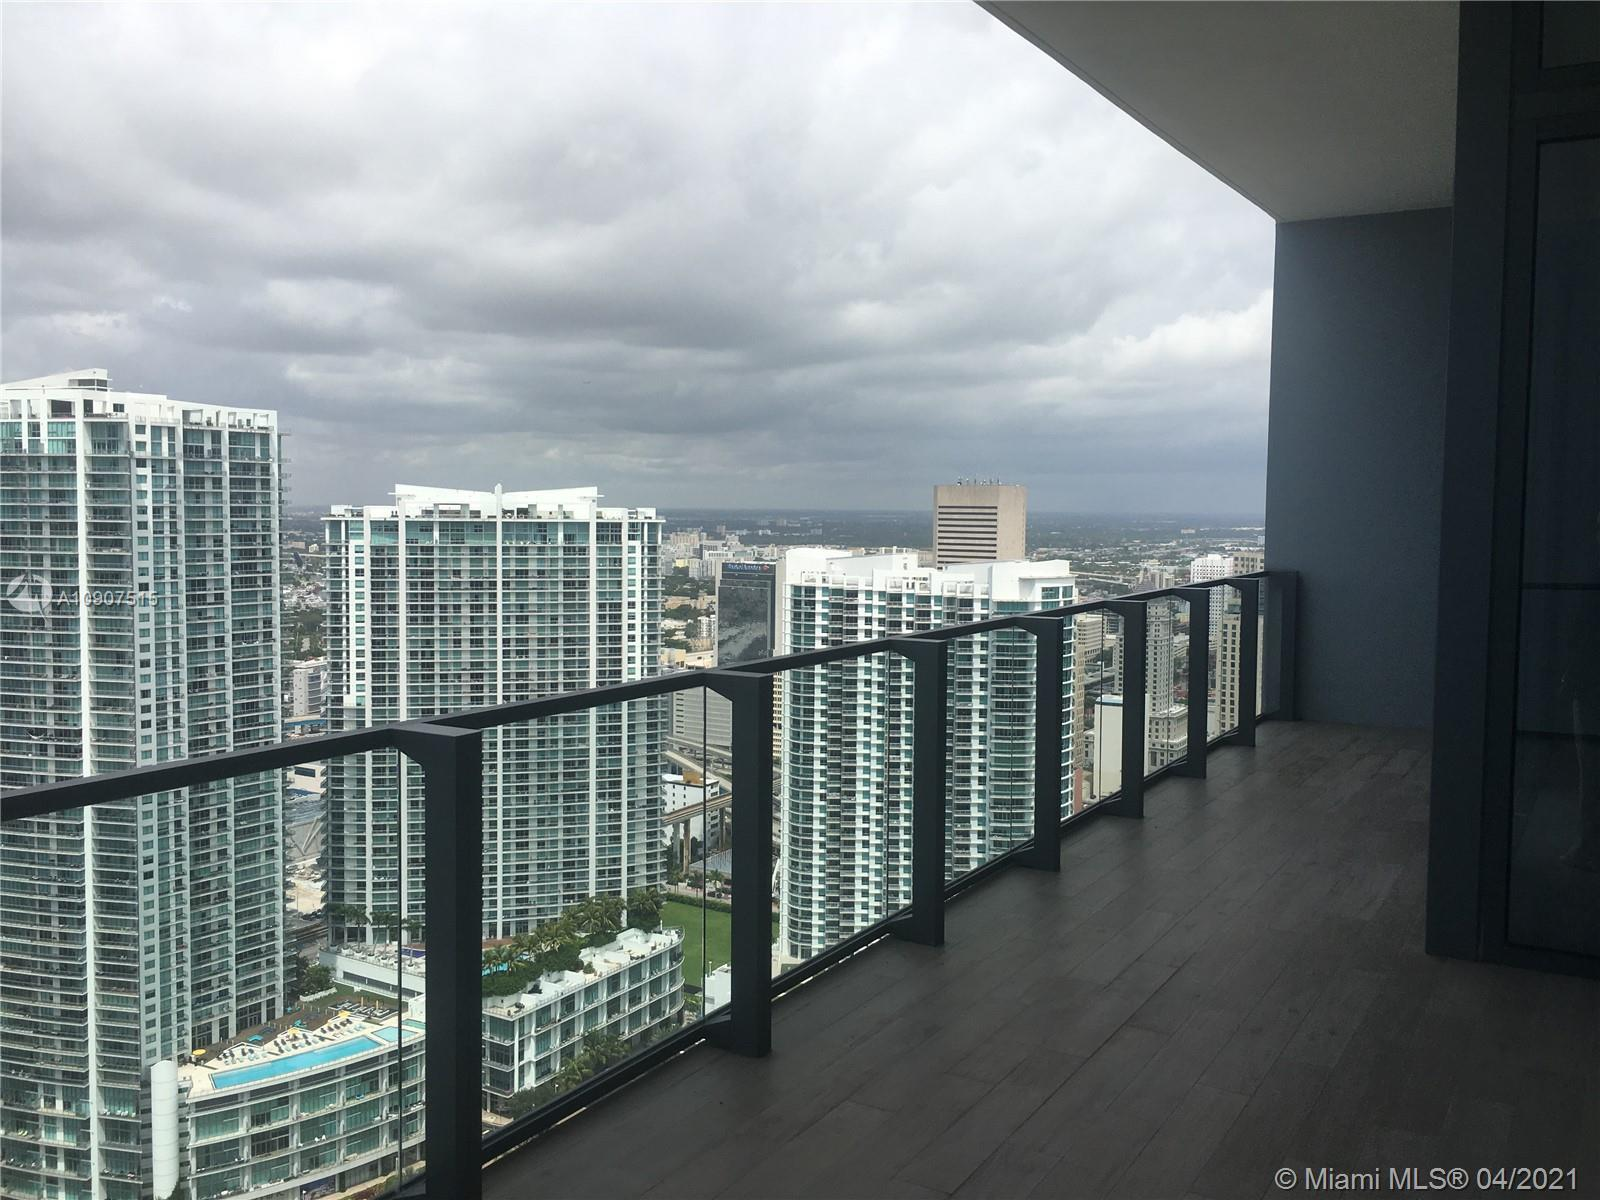 Own a beautiful unit at this new exclusive building in the heart of Brickell at Brickell City Centre